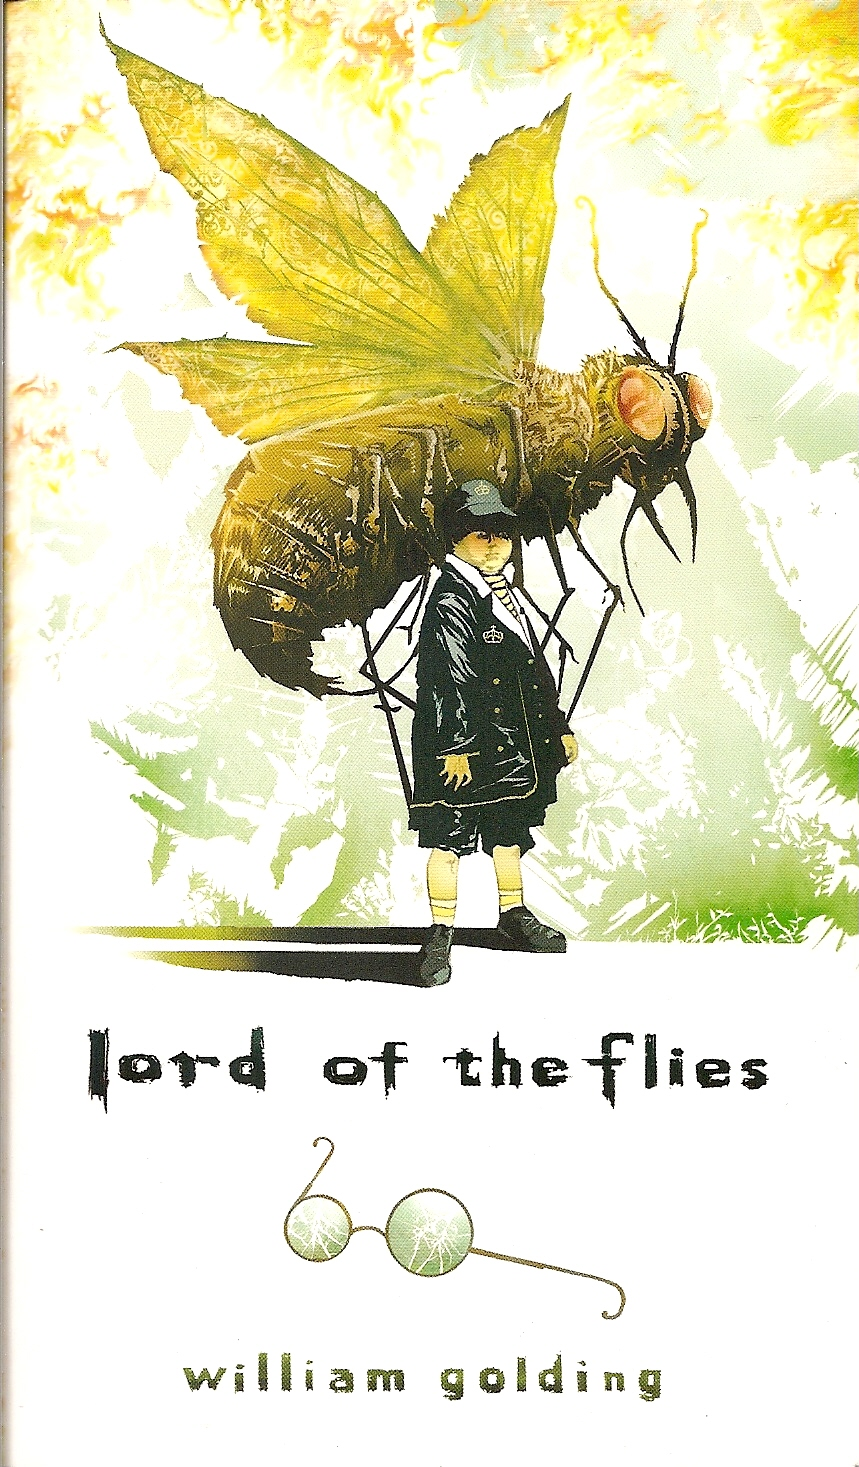 Lord Of The Flies Cover Images   Pictures   Becuo